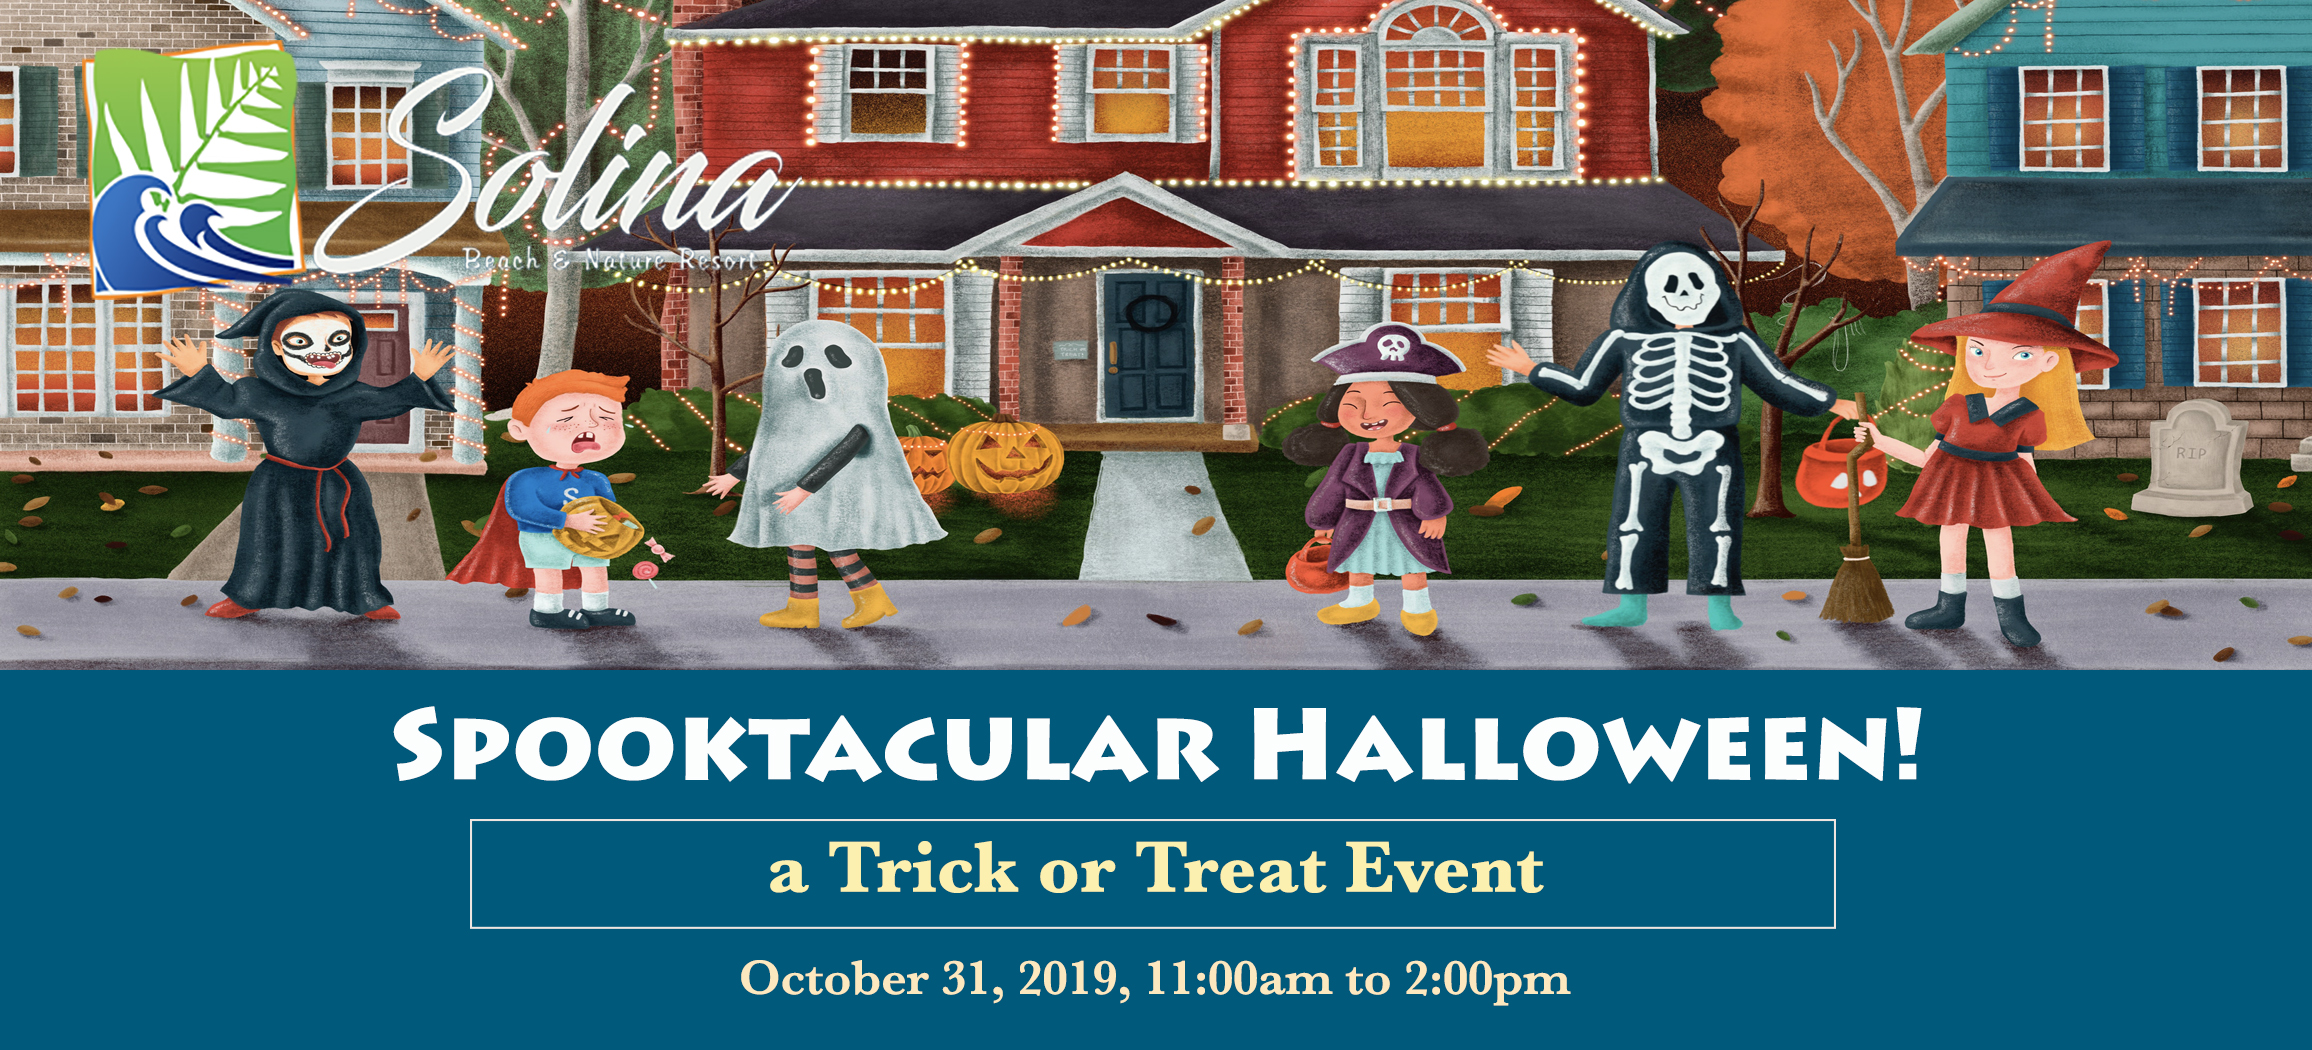 Spooktacular Halloween: A Trick or Treat Event